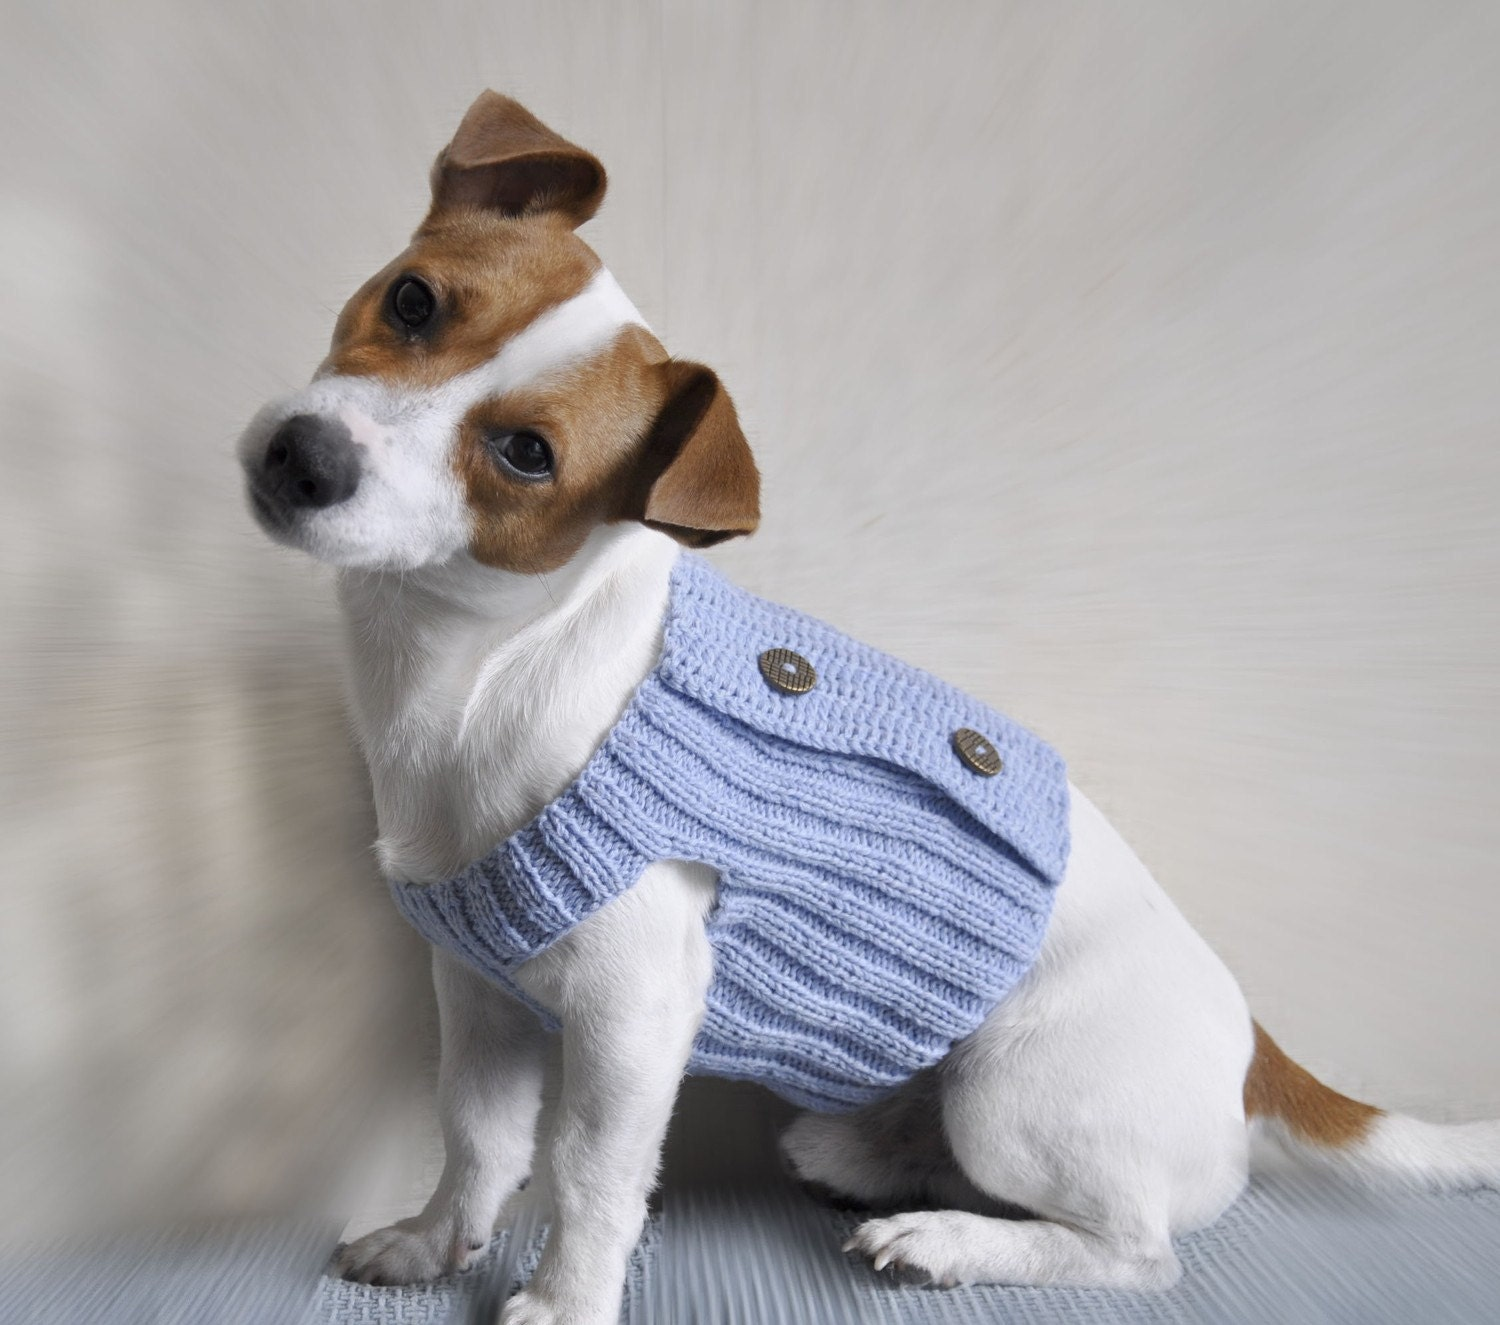 Knitting Pattern For Dog Onesie : Knitting Pattern Dog Sweater Pattern Knit Dog Sweater